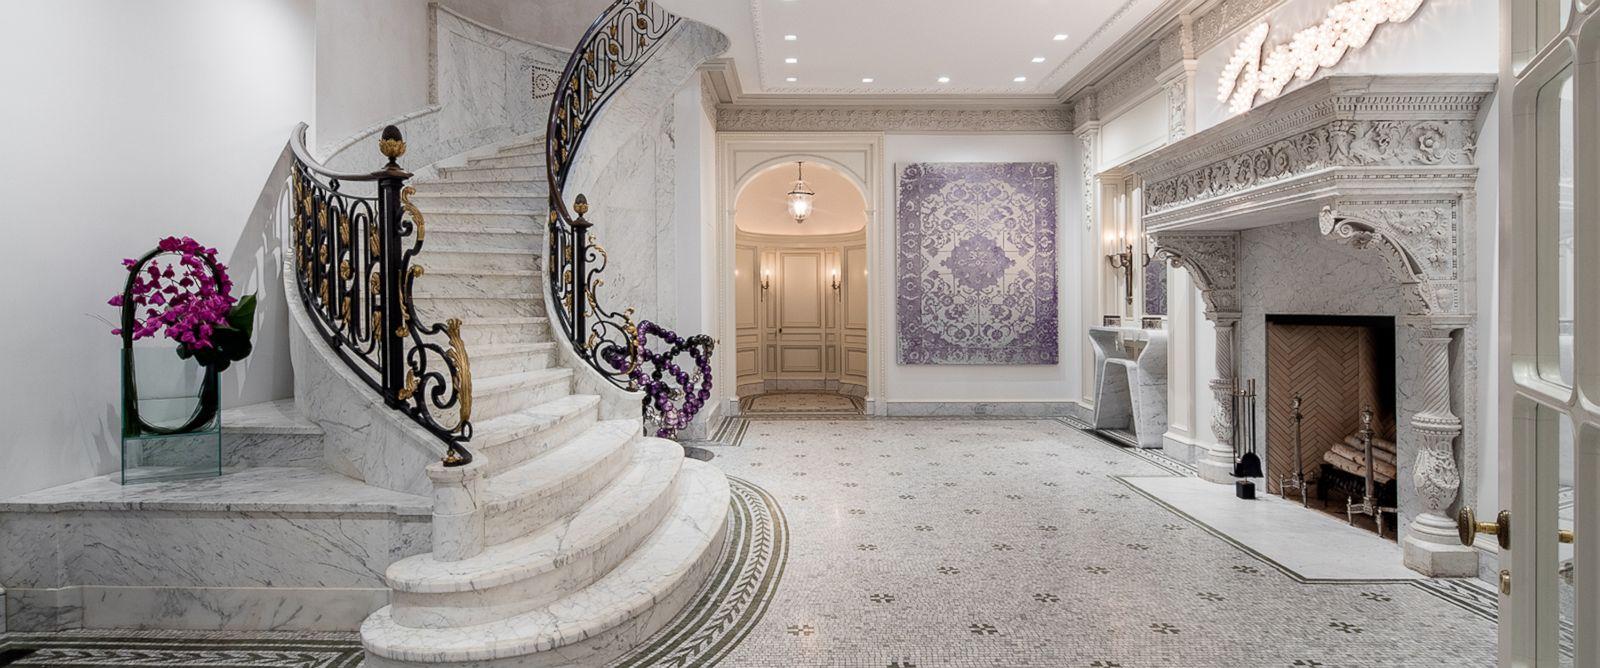 Luxurious new york city mansion on the market for 84 5 for Manhattan mansions for sale